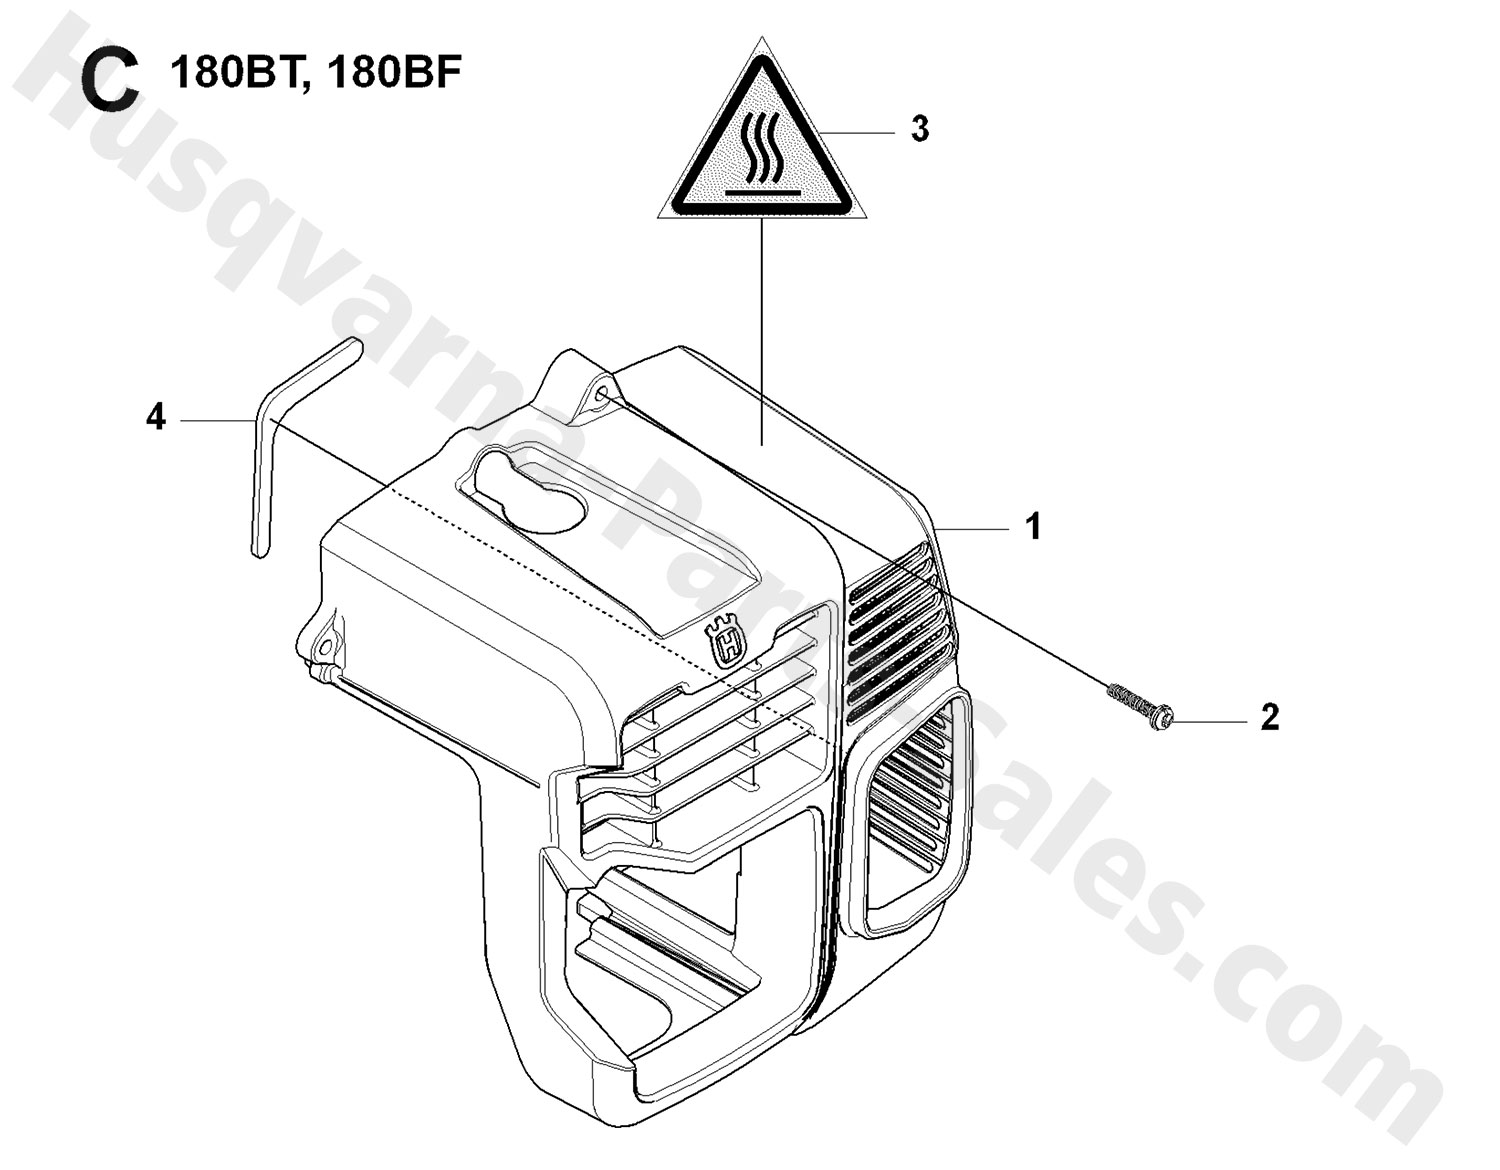 180bf Husqvarna Backpack Blowers Cylinder Cover Parts